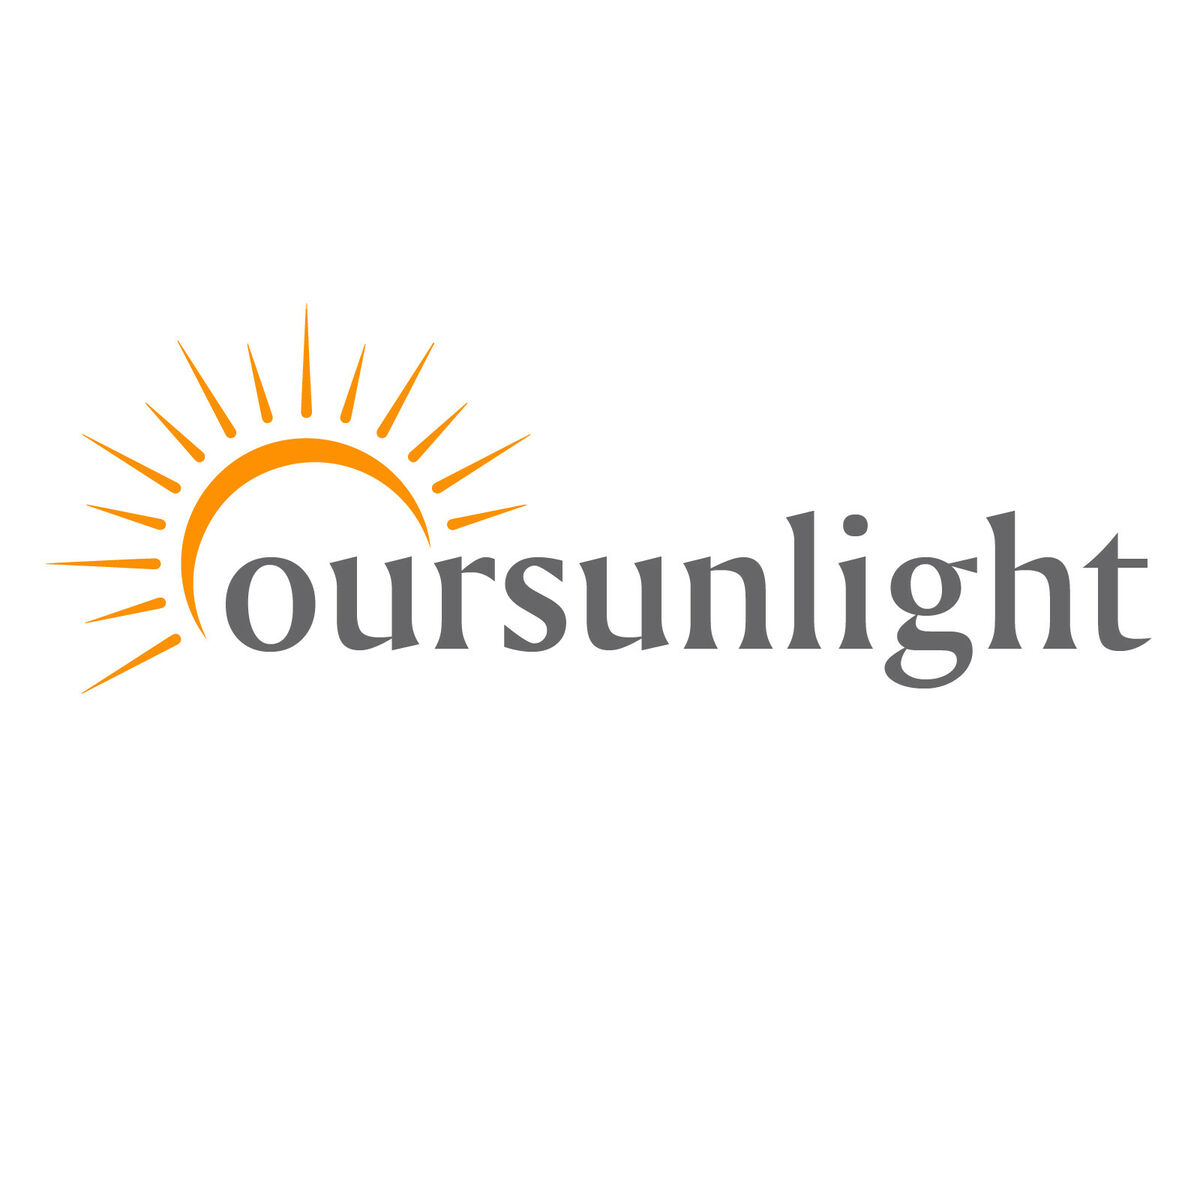 oursunlight